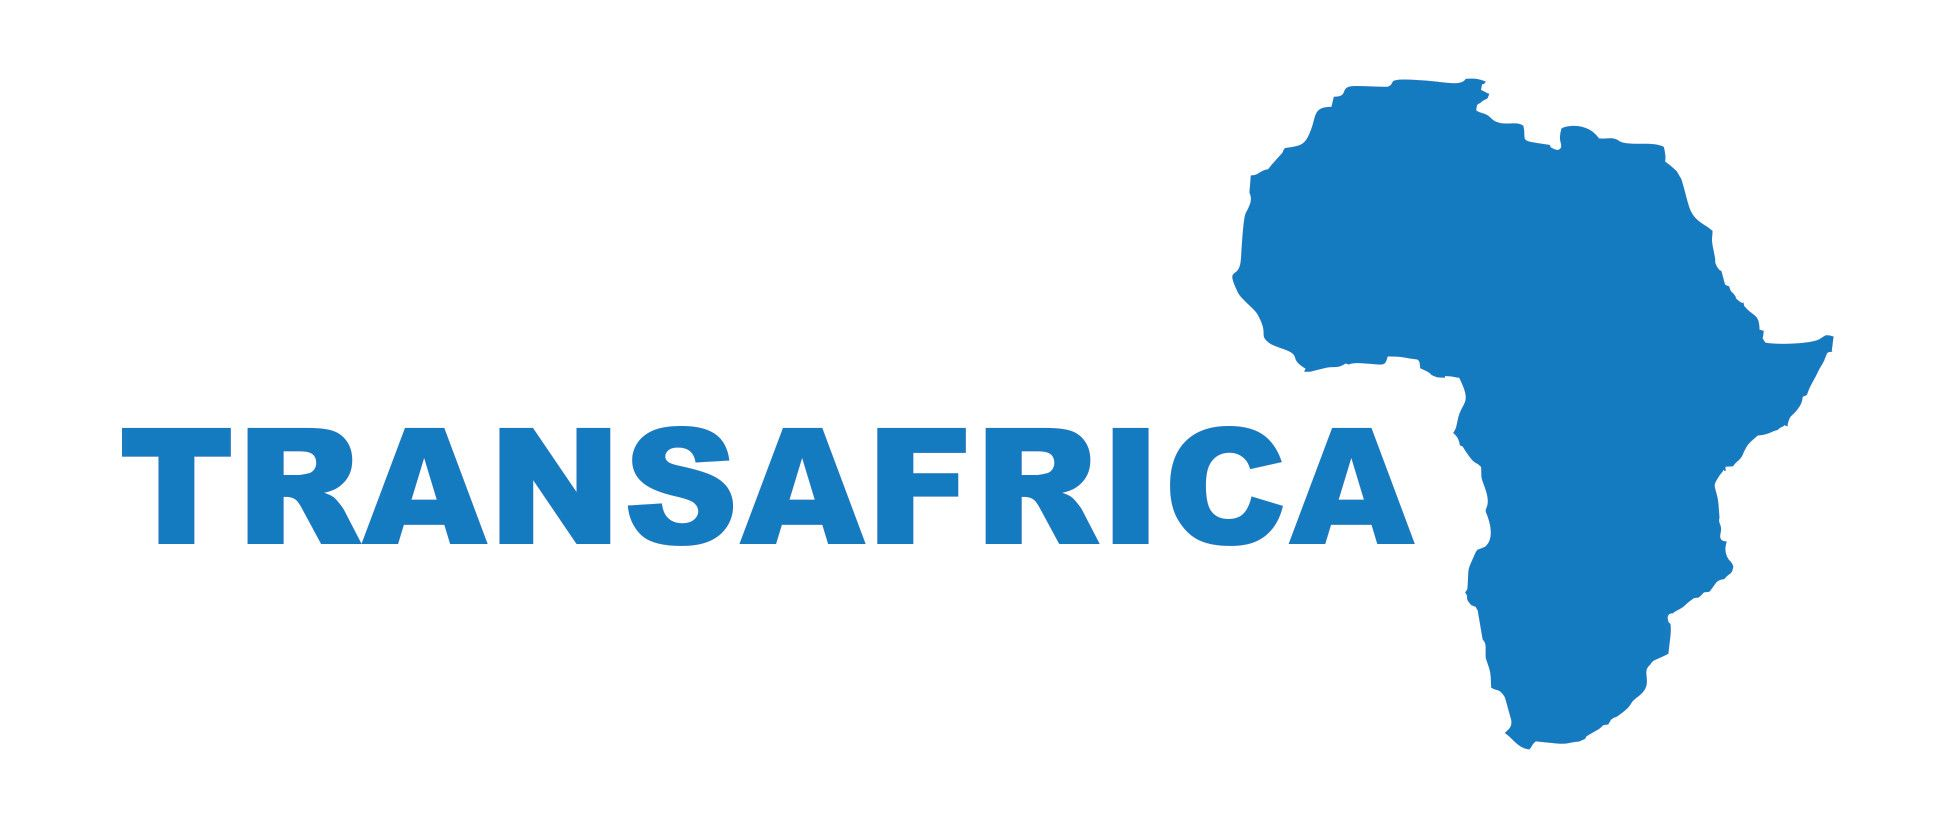 About Transafrica